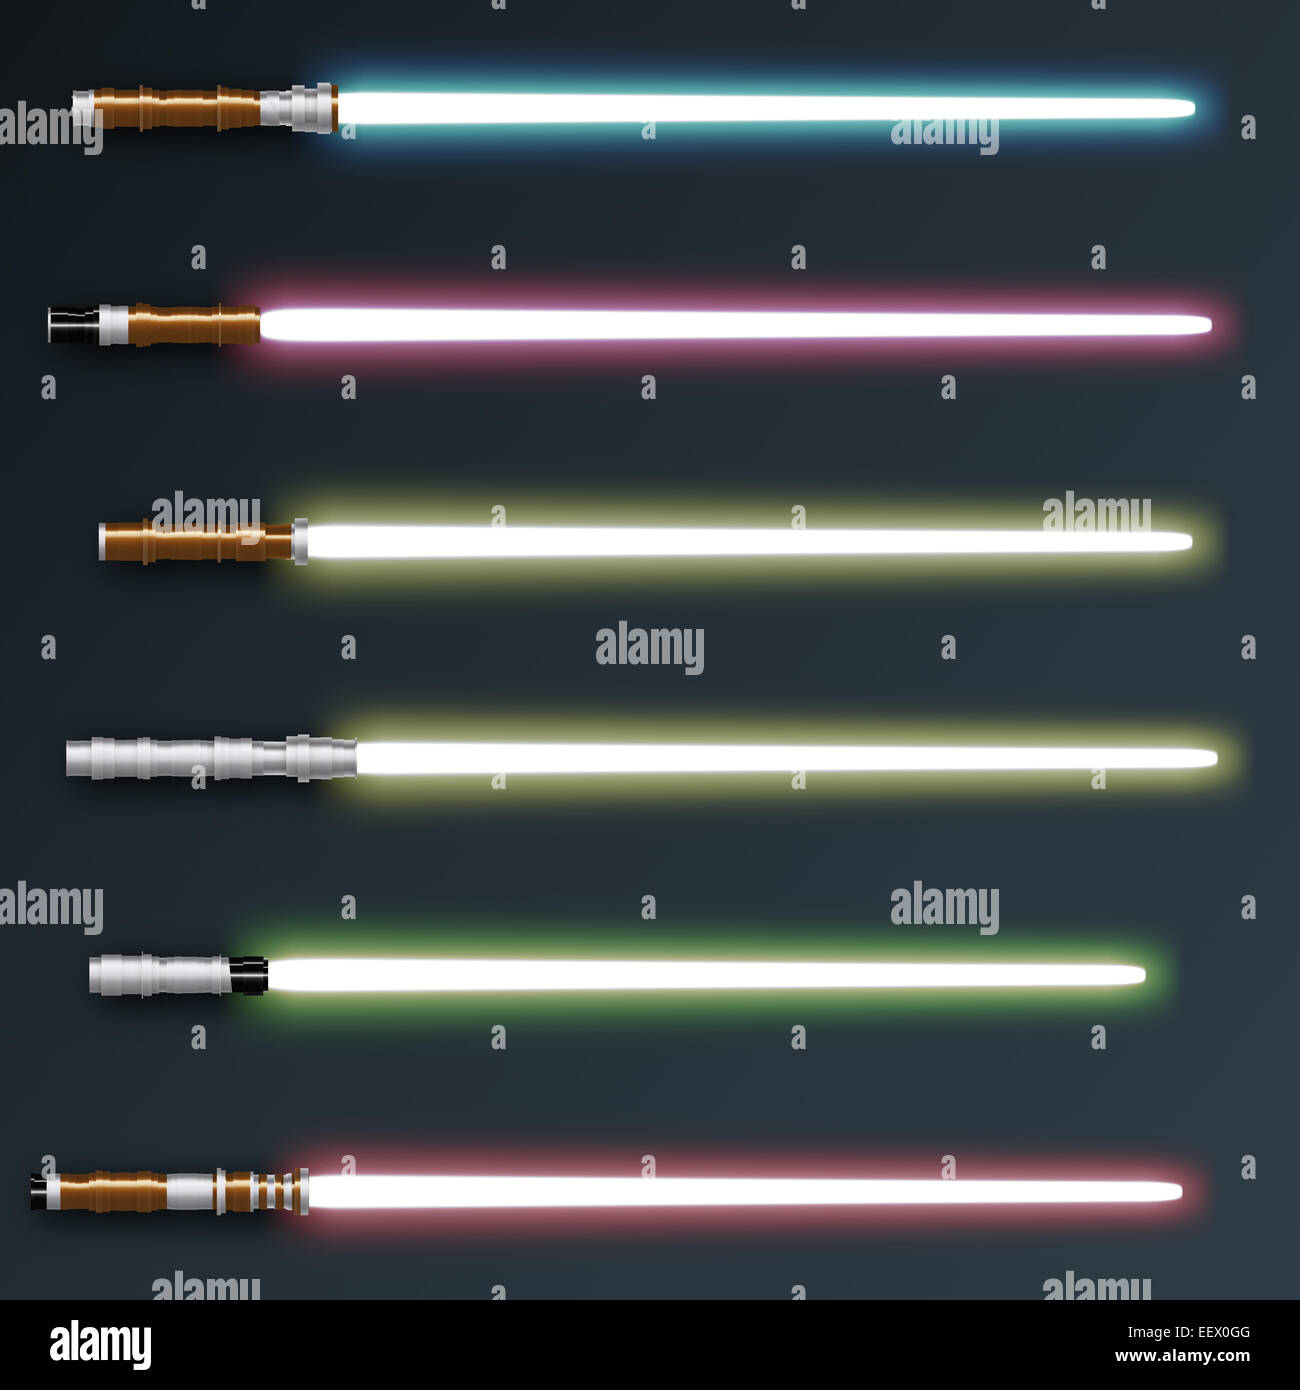 Six light sabers glowing in different colors - Stock Image